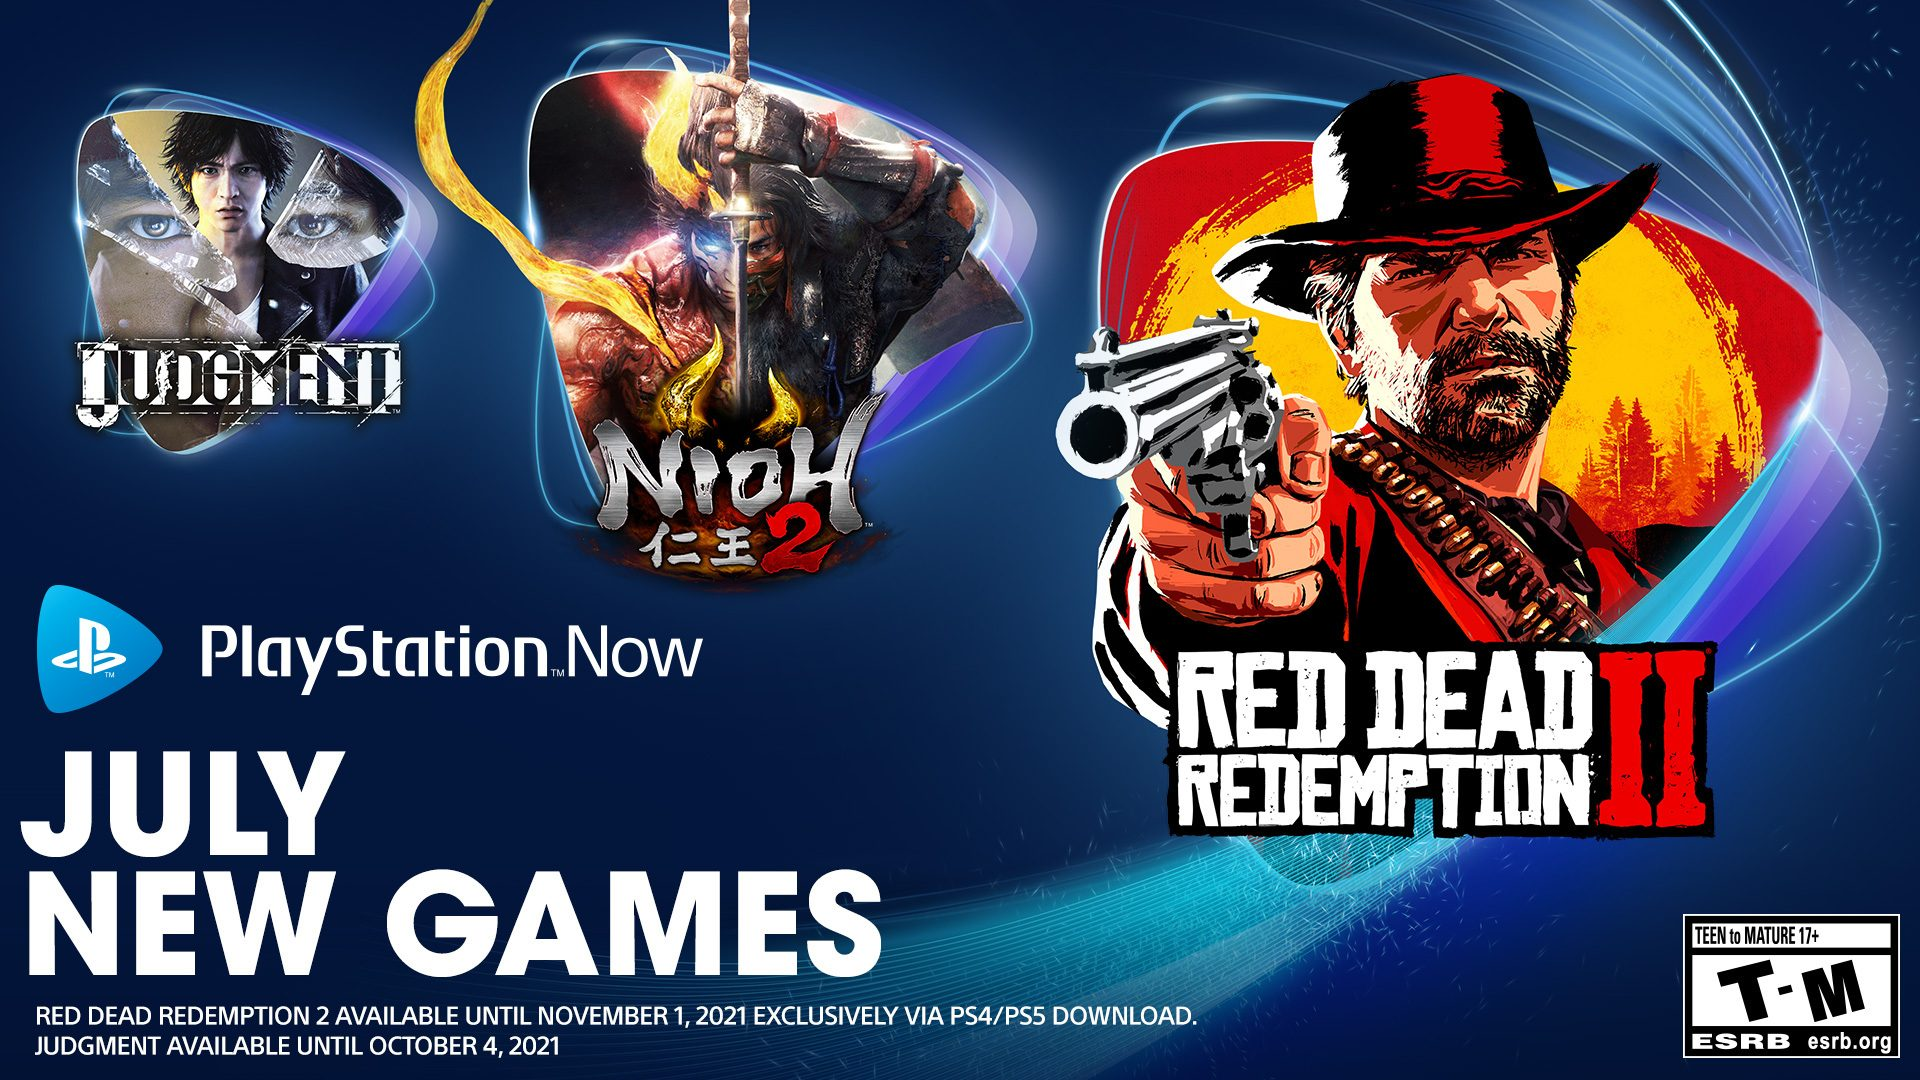 PlayStation Now games for July: Red Dead Redemption 2, Nioh 2, Judgment